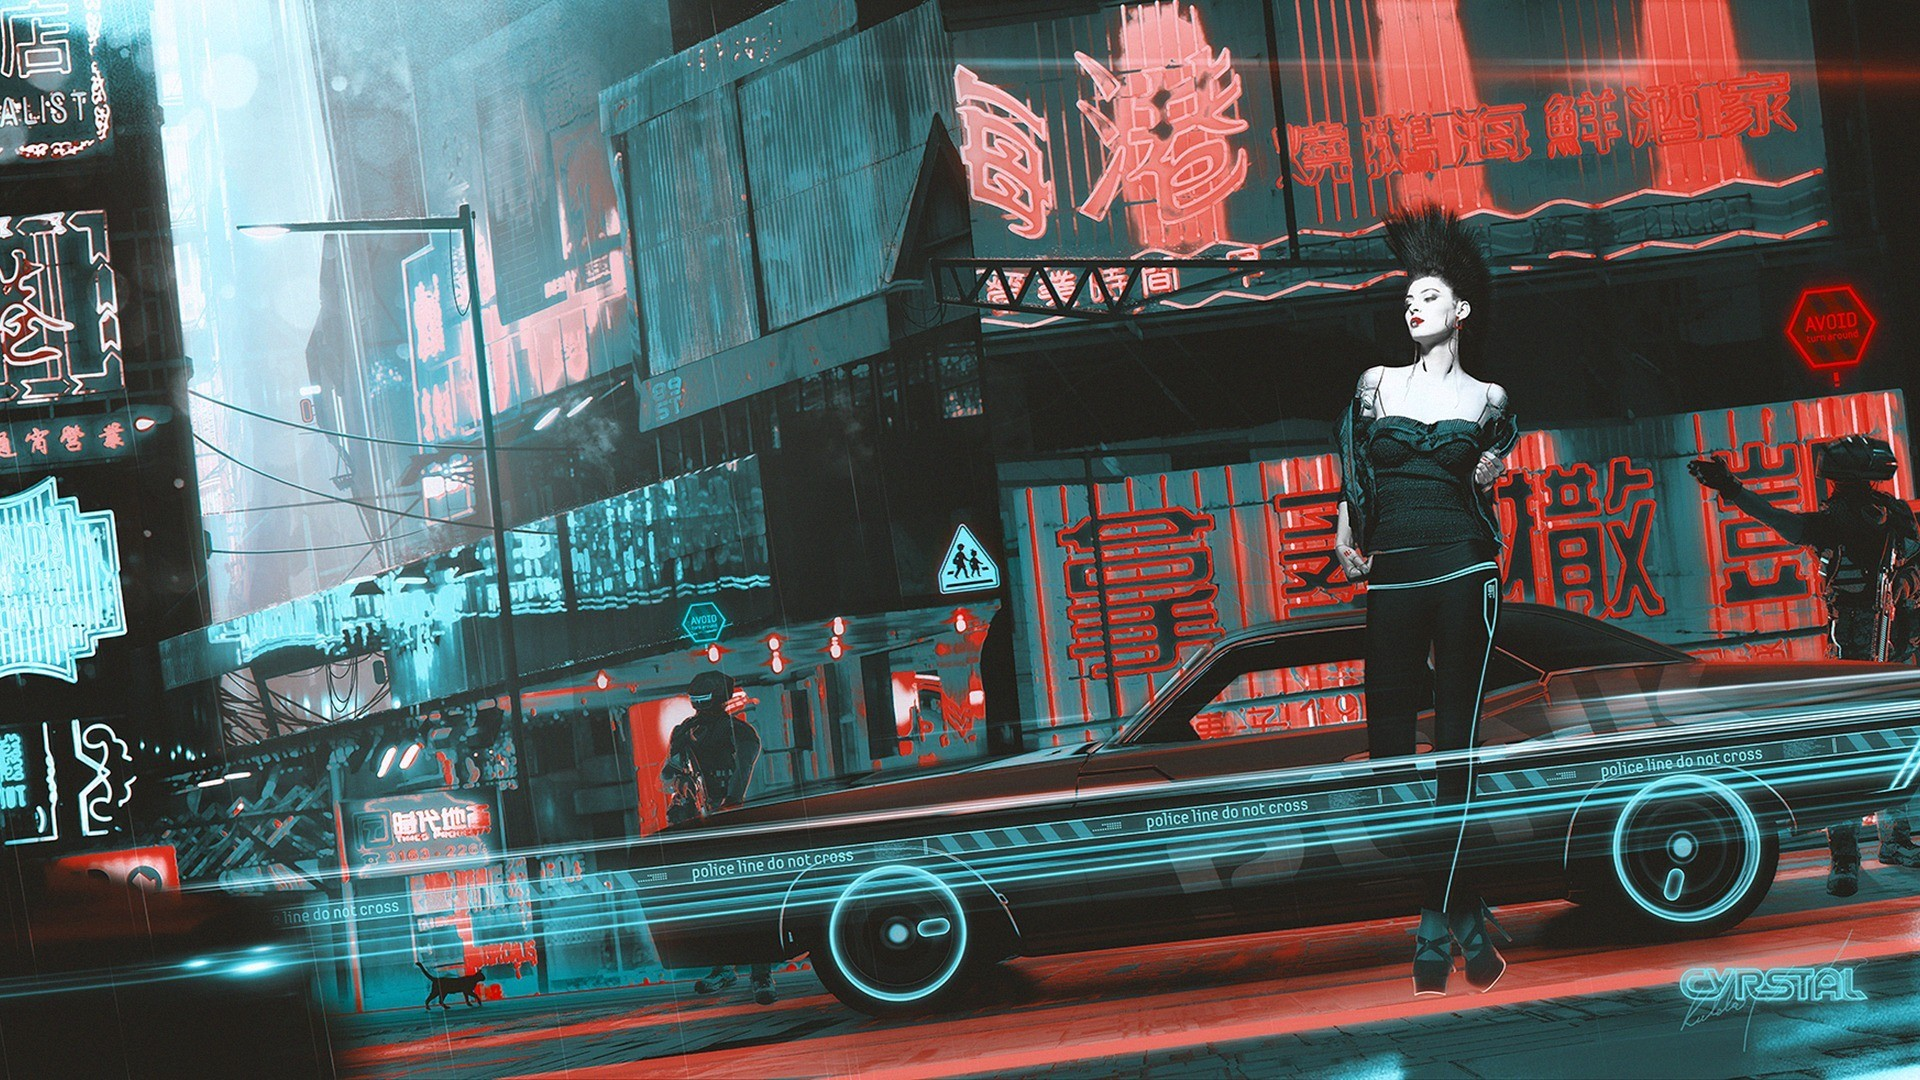 Car 5760x1080 Wallpaper Artwork Fantasy Art Cyberpunk Women China Town Kuldar